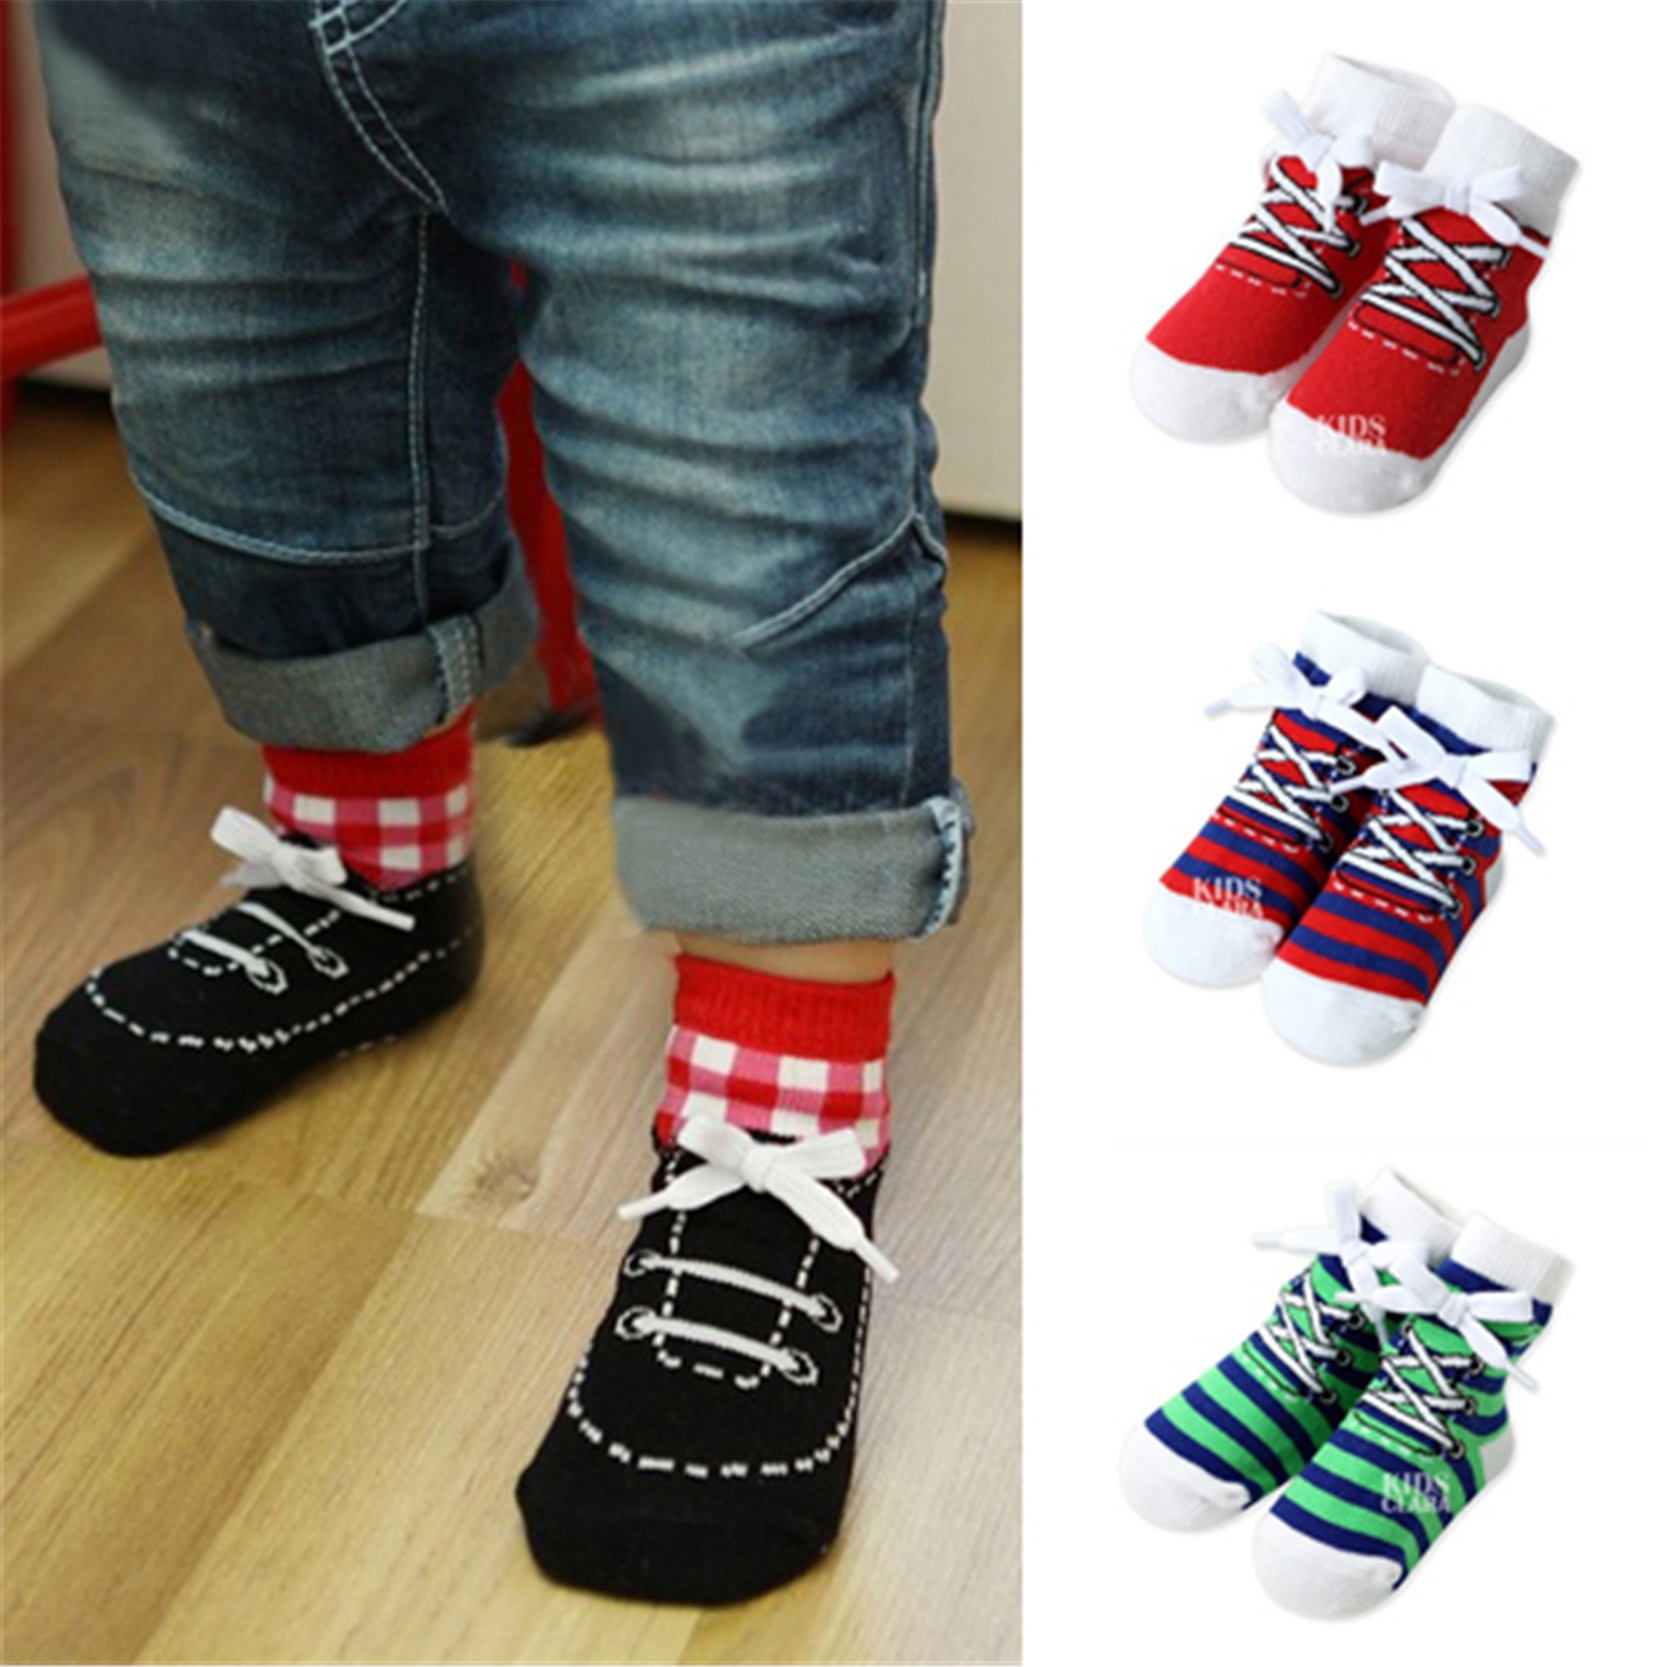 Boys And Girls Lace Up Shoes Style Socks Cotton Infant Baby Socks Kid Gentleman Clothing Accessories